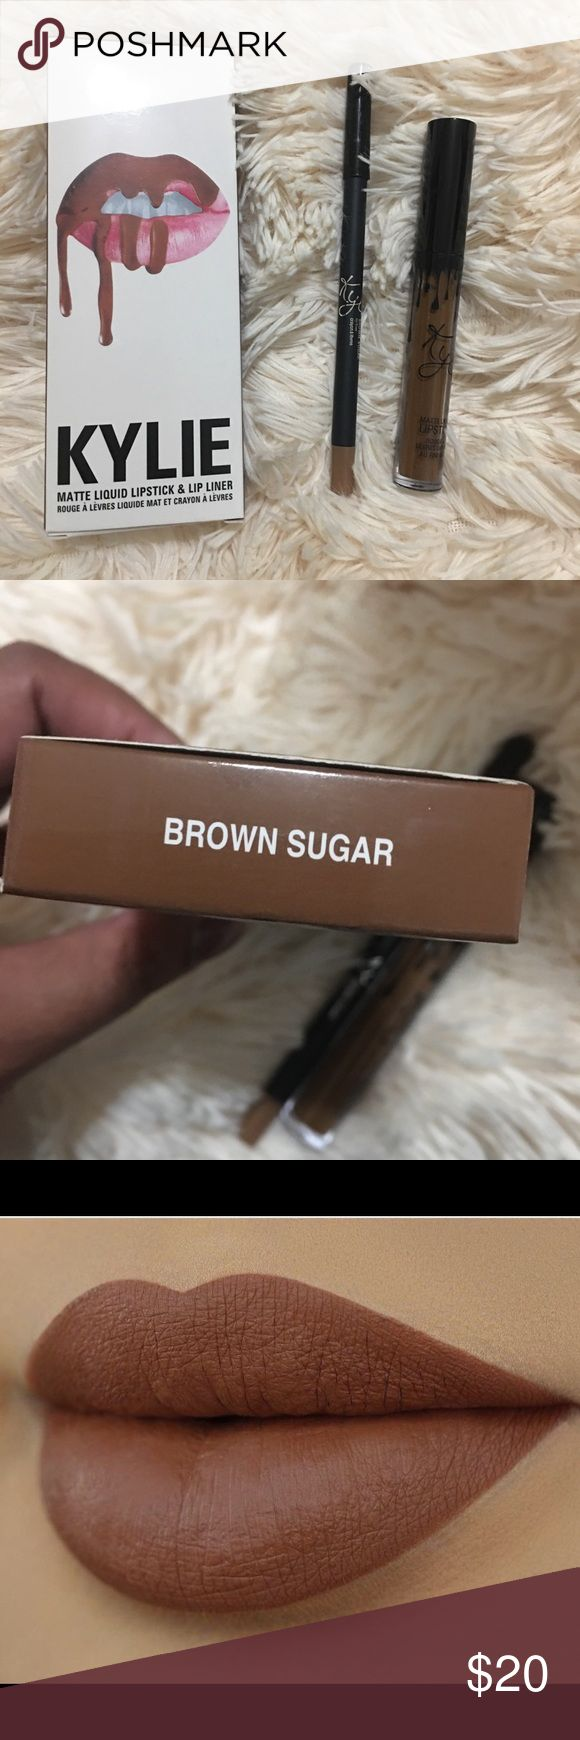 Kylie Lip Set Brown Sugar New in box  Includes liquid lipstick and lip liner  Color Brown Sugar Kylie Cosmetics Makeup Lip Liner #lipstickcolorsbrown